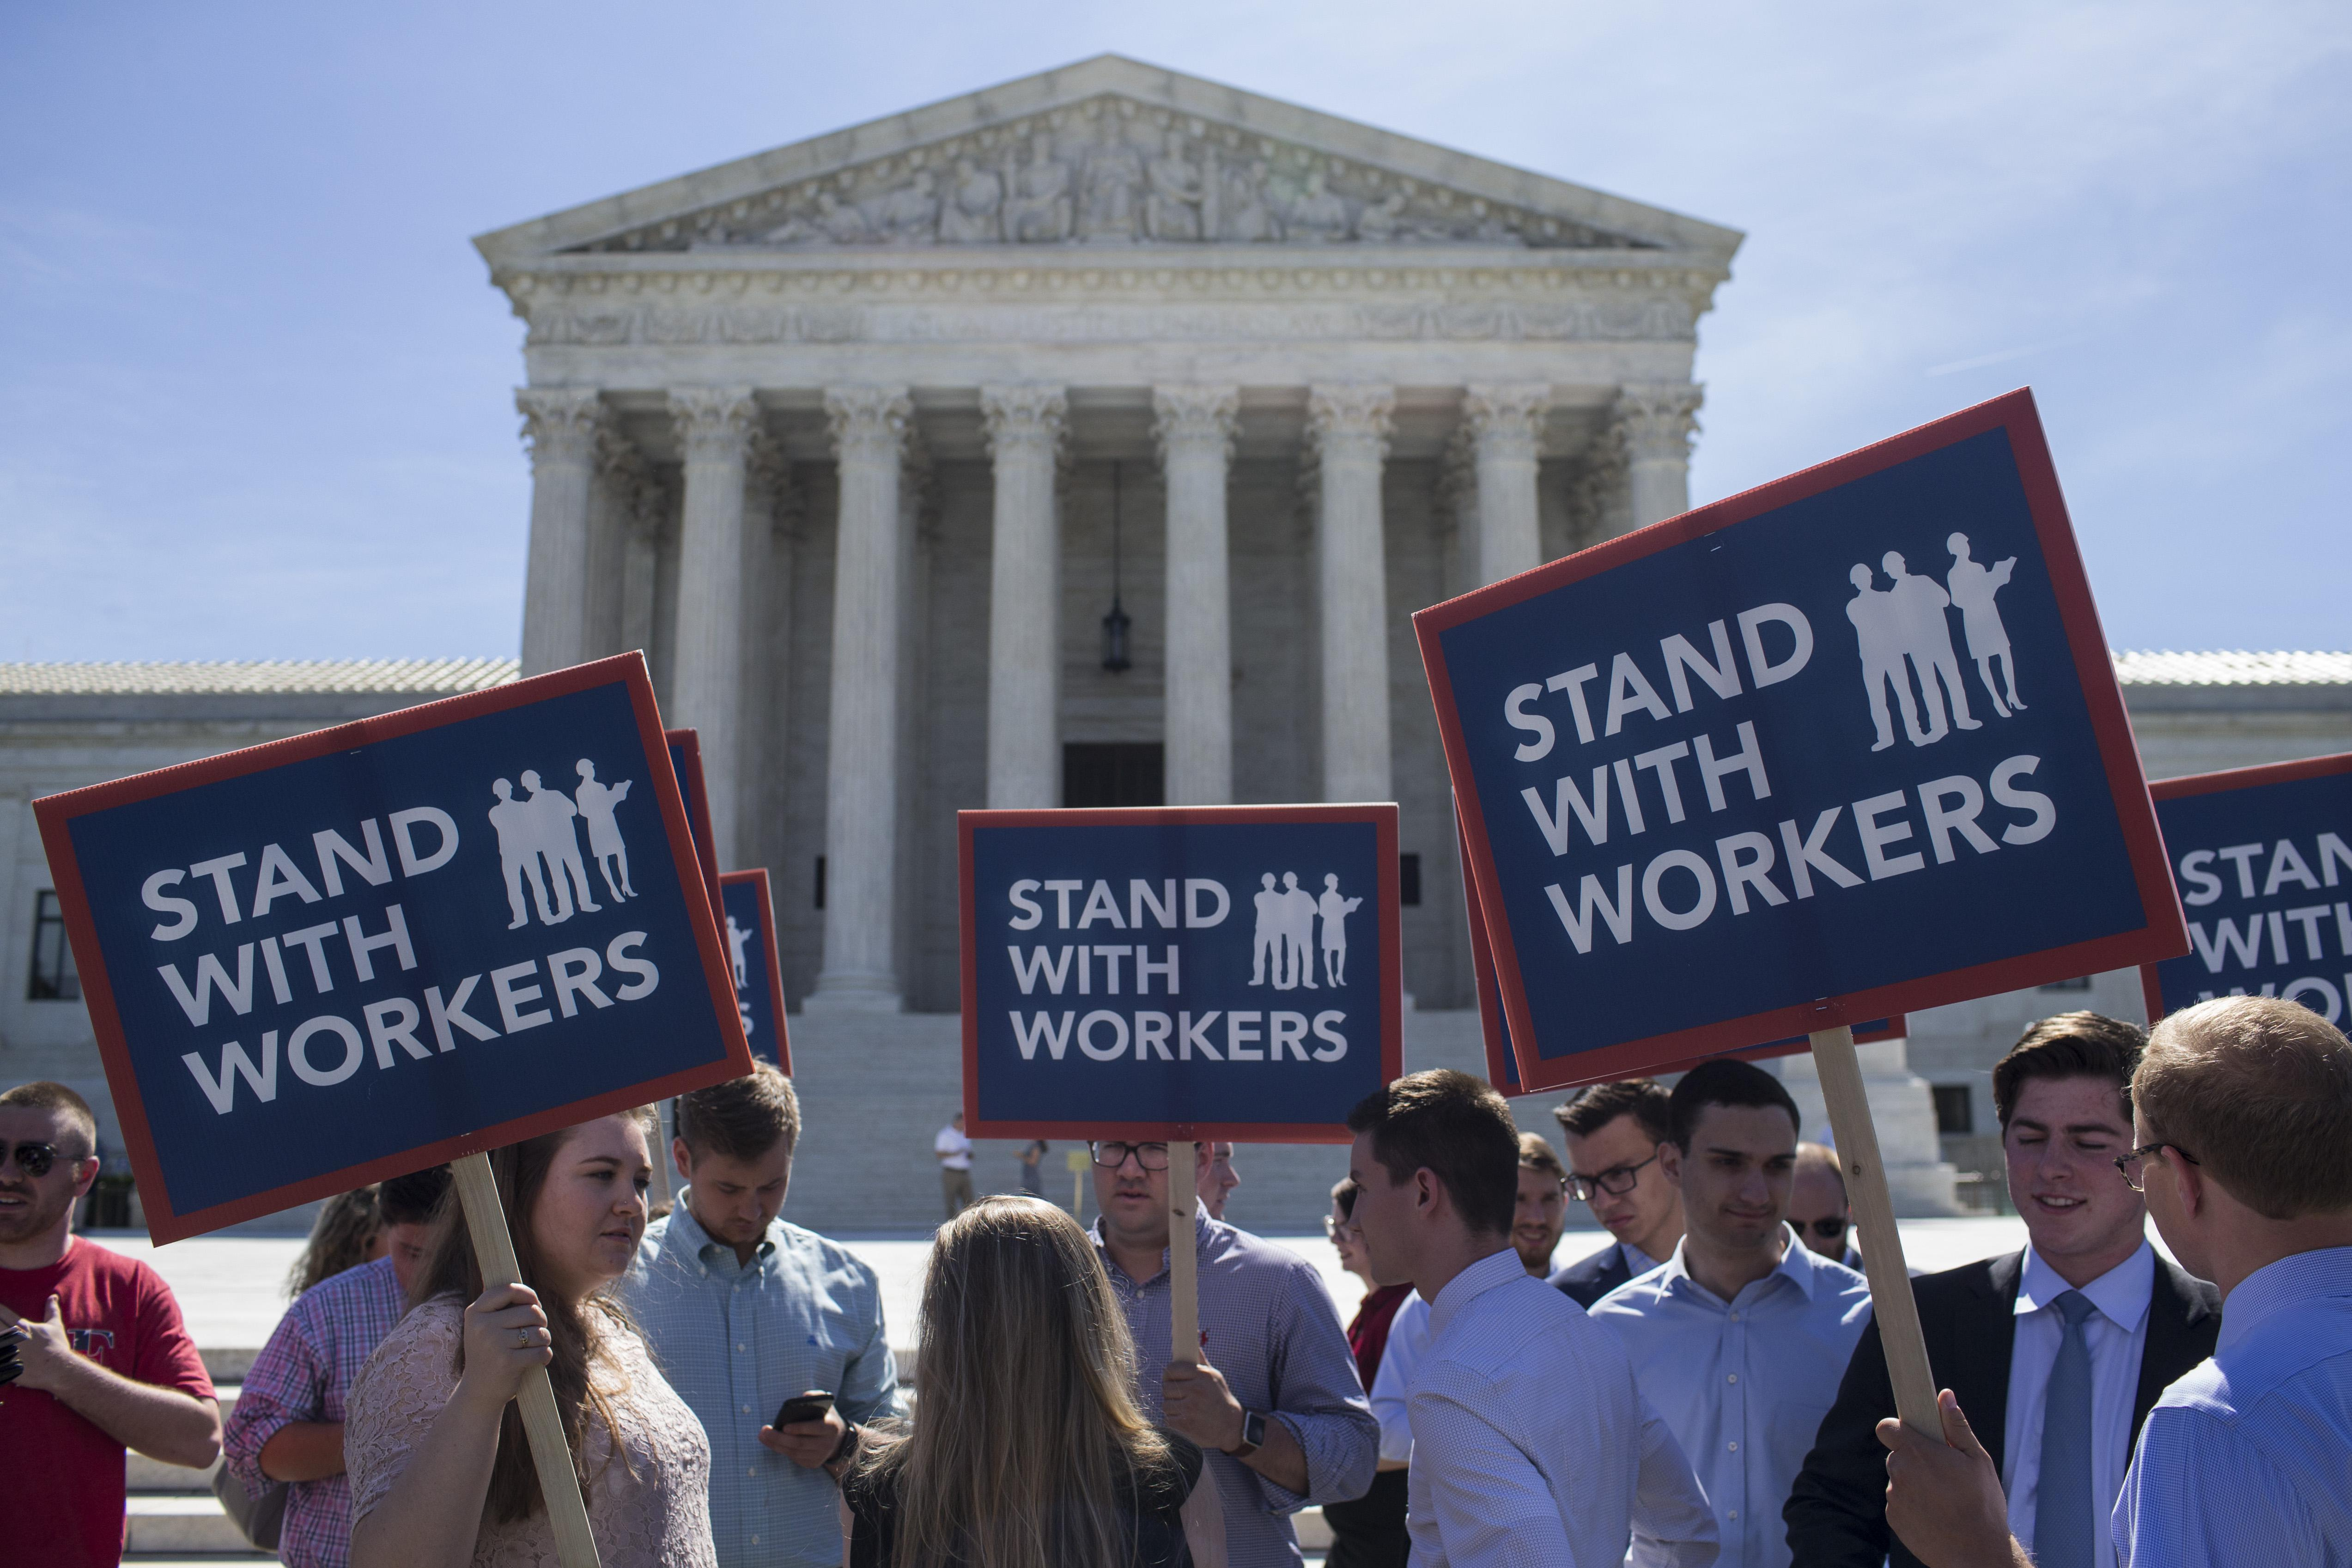 Demonstrators hold signs in front of the U.S. Supreme Court on June 25, 2018 in Washington, D.C.